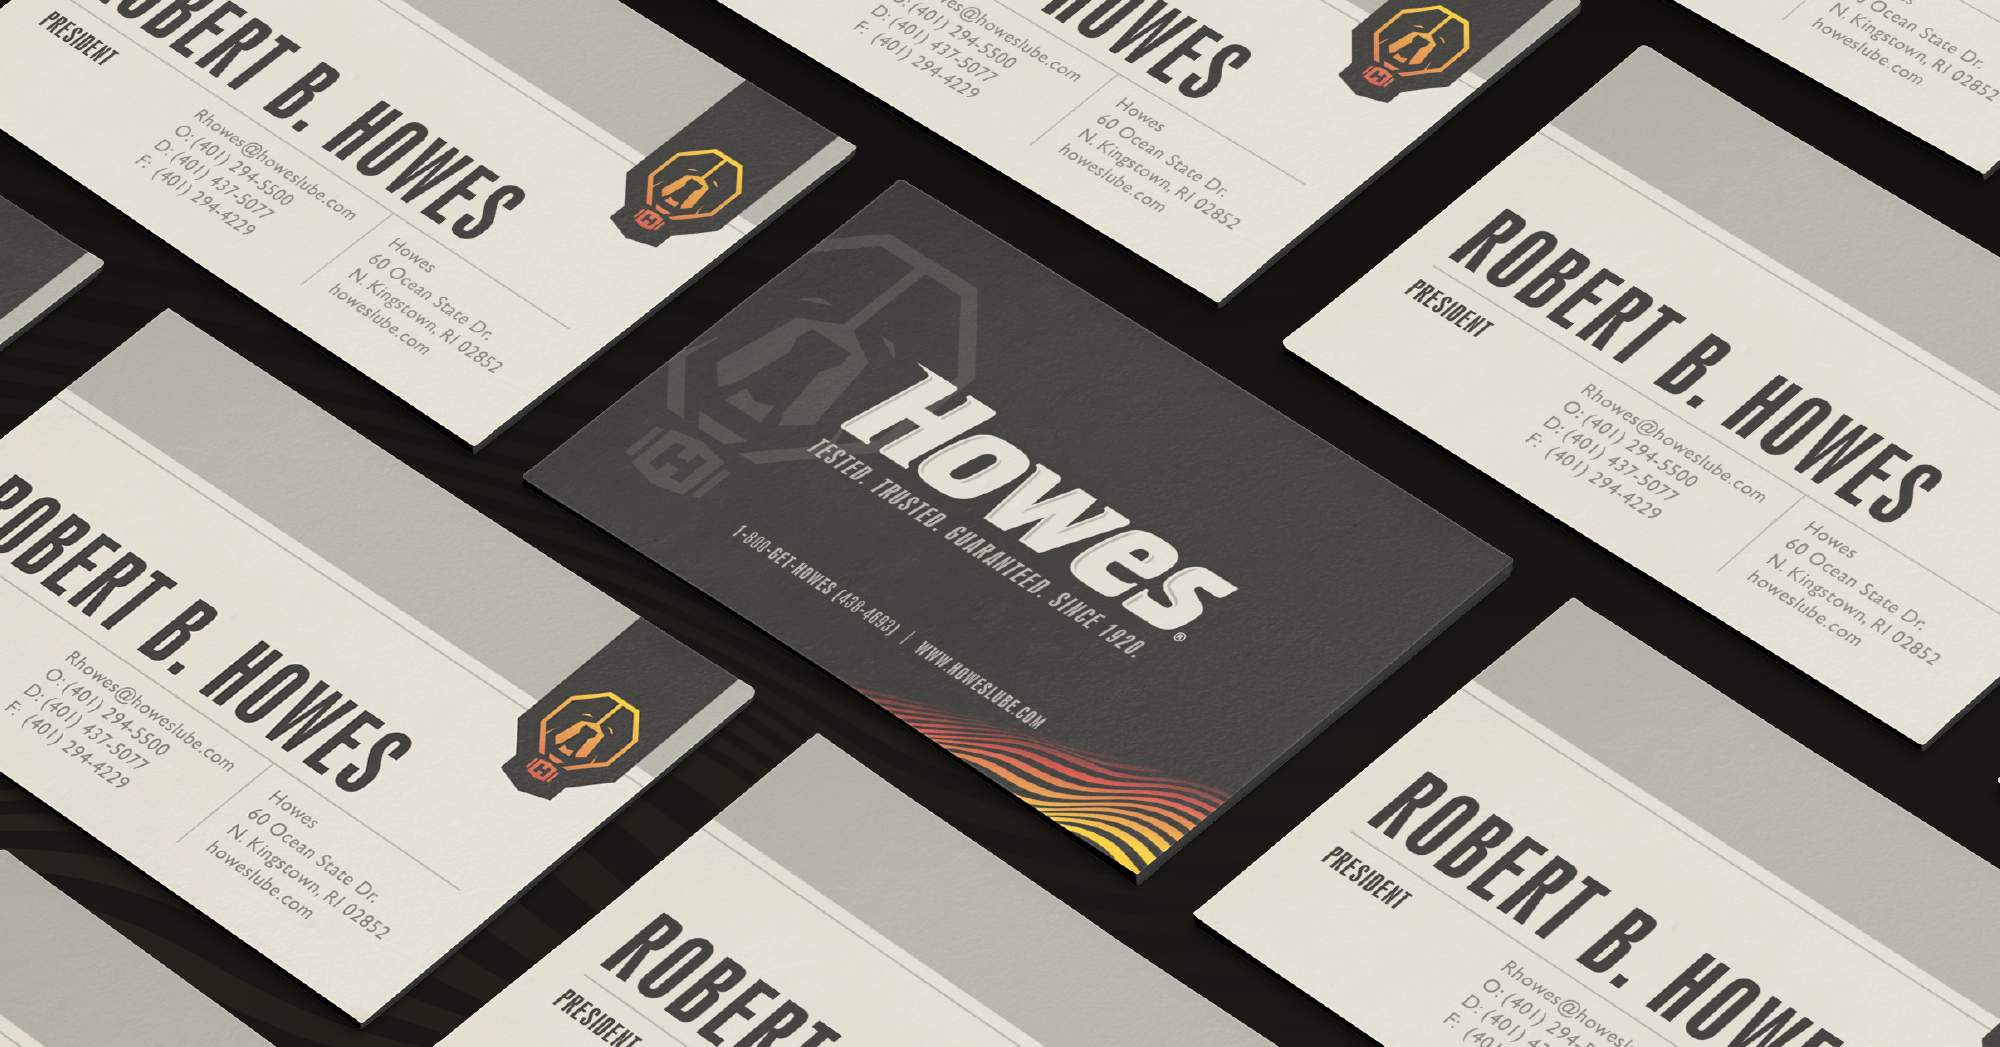 Howes_CaseStudy_images-08.png